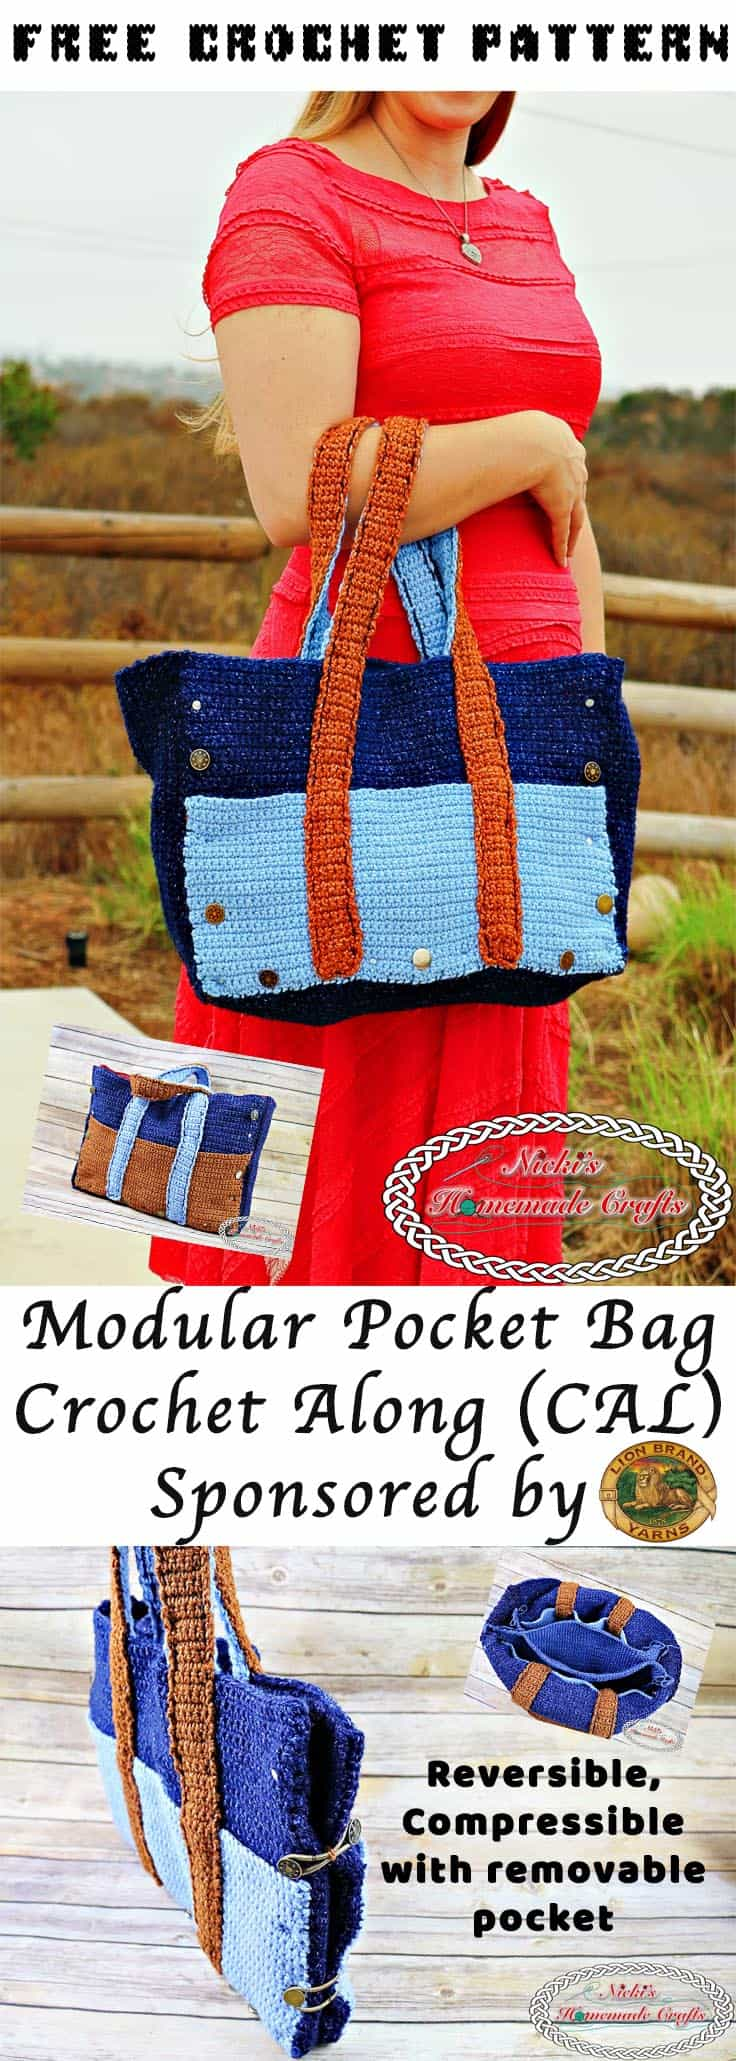 Modular Pocket Bag Crochet Along - Free Crochet Pattern - Sponsored by Lion Brand Yarns, designed by Nicki's Homemade Crafts #crochet #crocheting #crochetalong #crochetbag #bag #lionbrand #freecrochetpattern